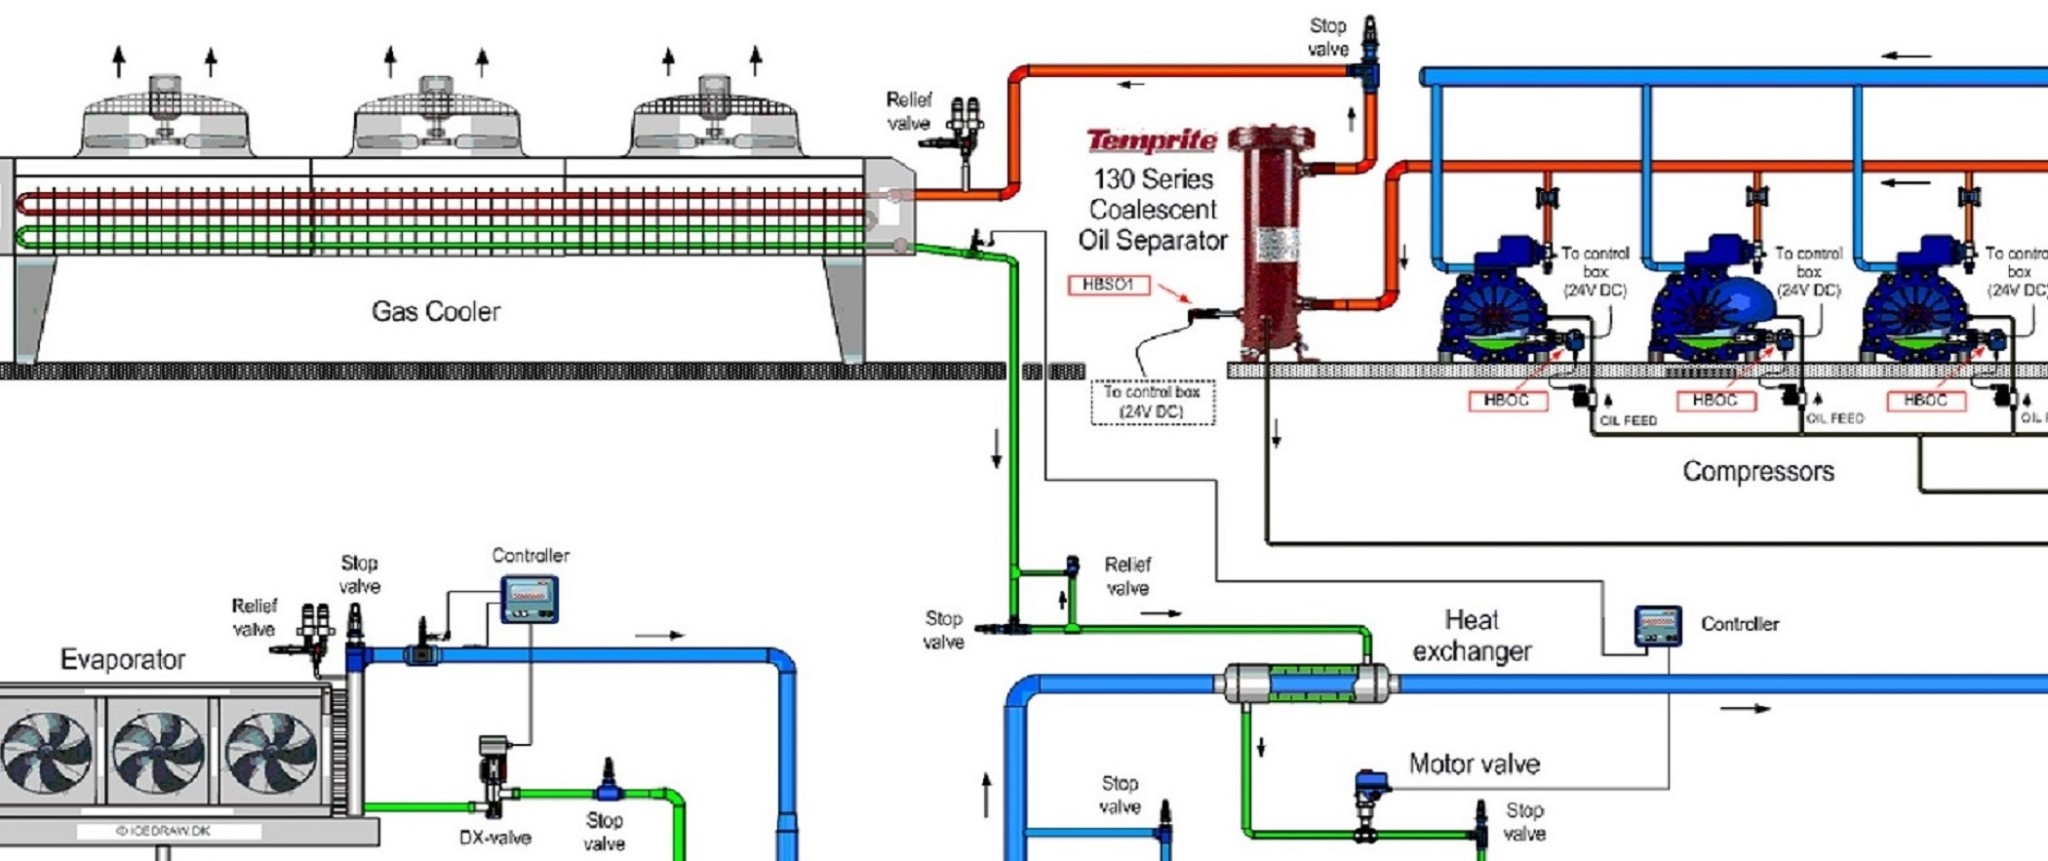 Business Diagrams Block Diagrams additionally Hvac System Requirements together with Wire A Thermostat also Our Picks For Top Best Thermostats For Homes moreover Hvac Presentation For Beginers. on basic hvac system